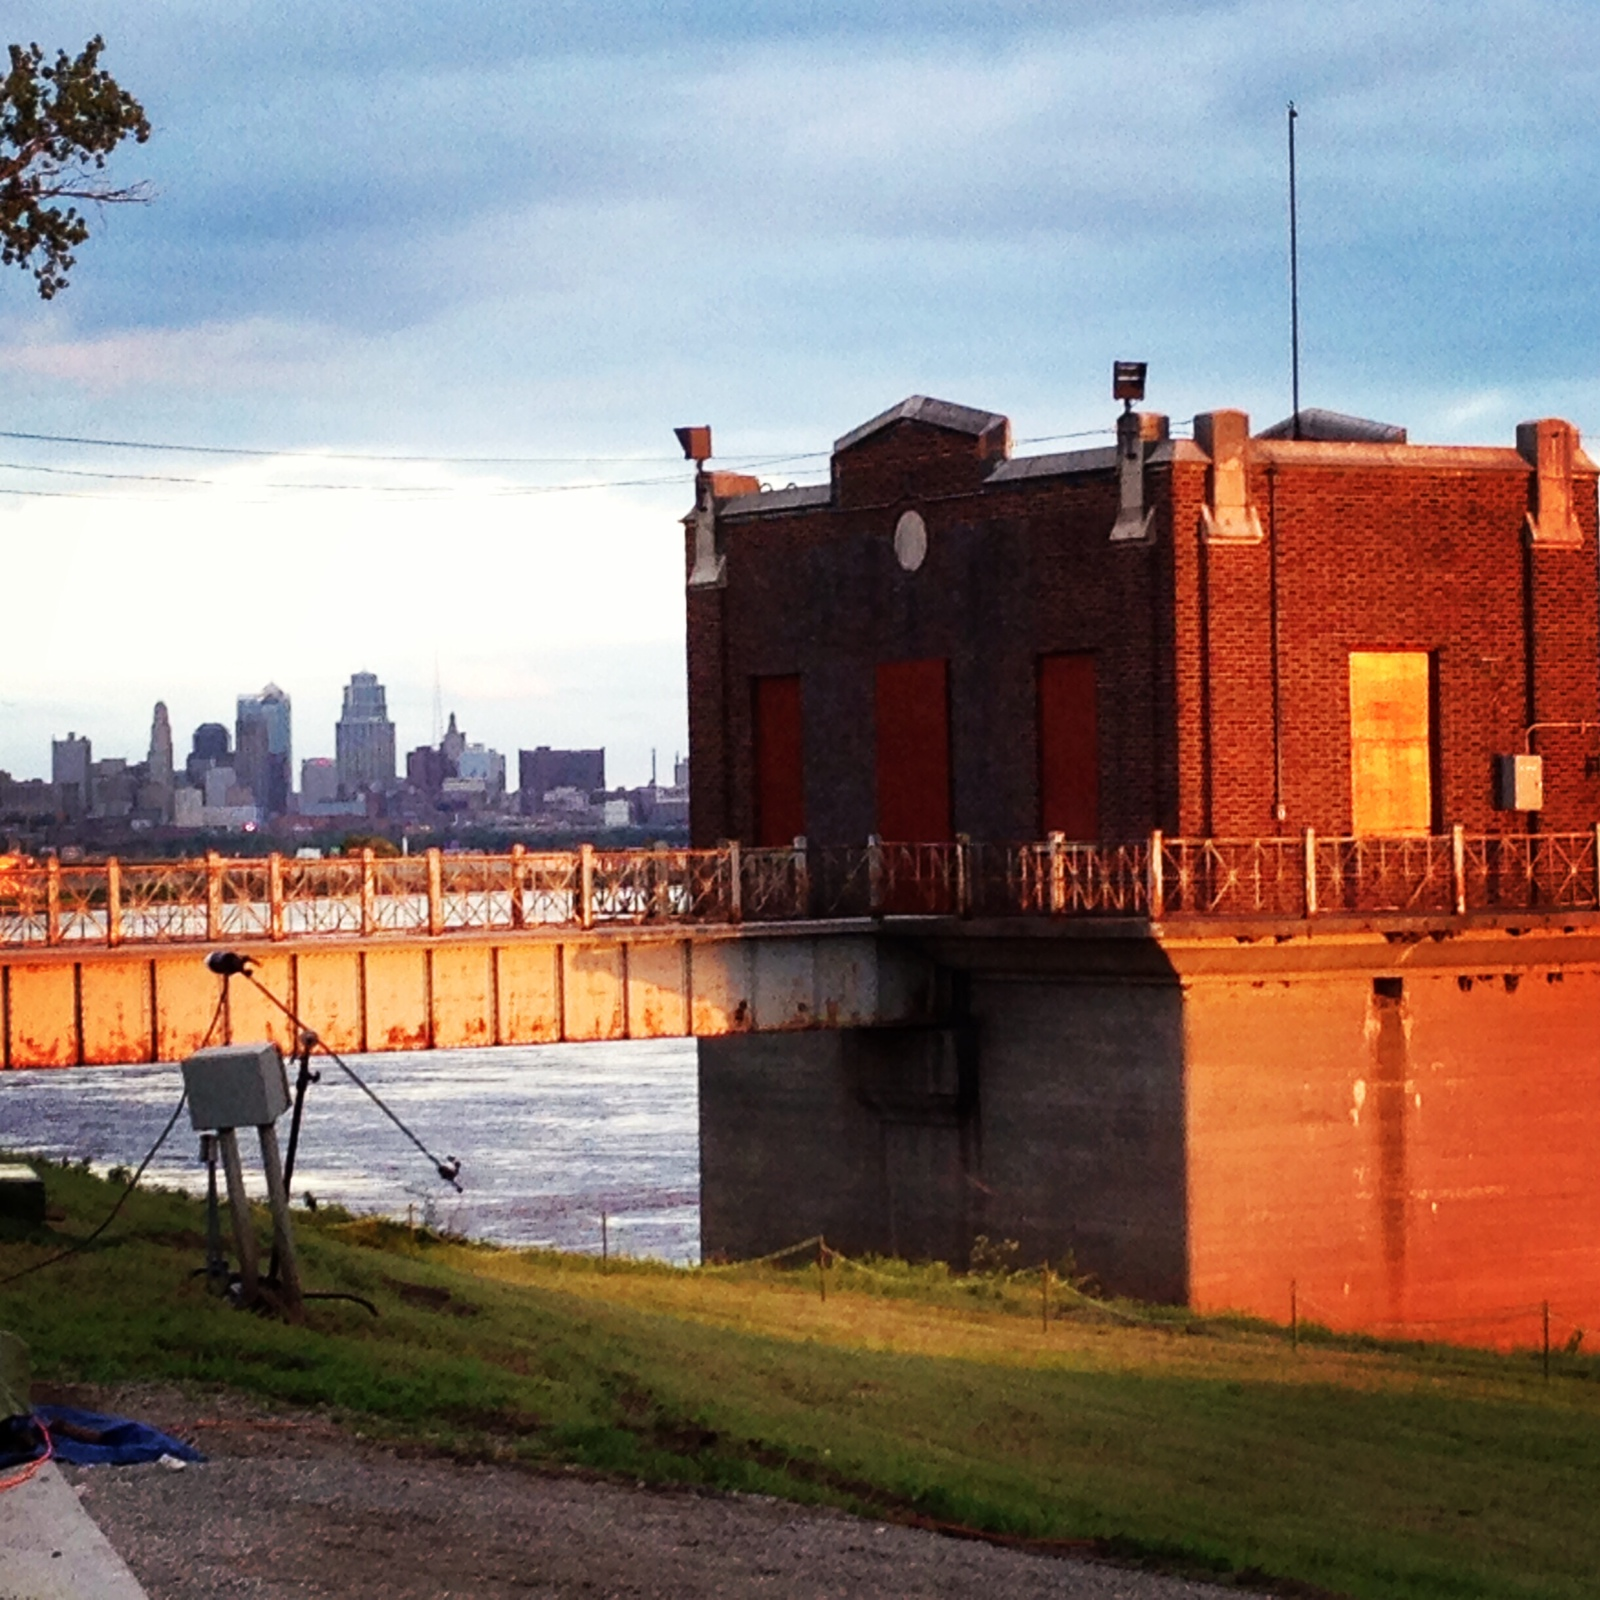 The view of Kansas City, Missouri's skyline and the river from the KCMO Water Services Department Pumphouse. Photo taken during Bridging the Gap's 20th Anniversary Party.